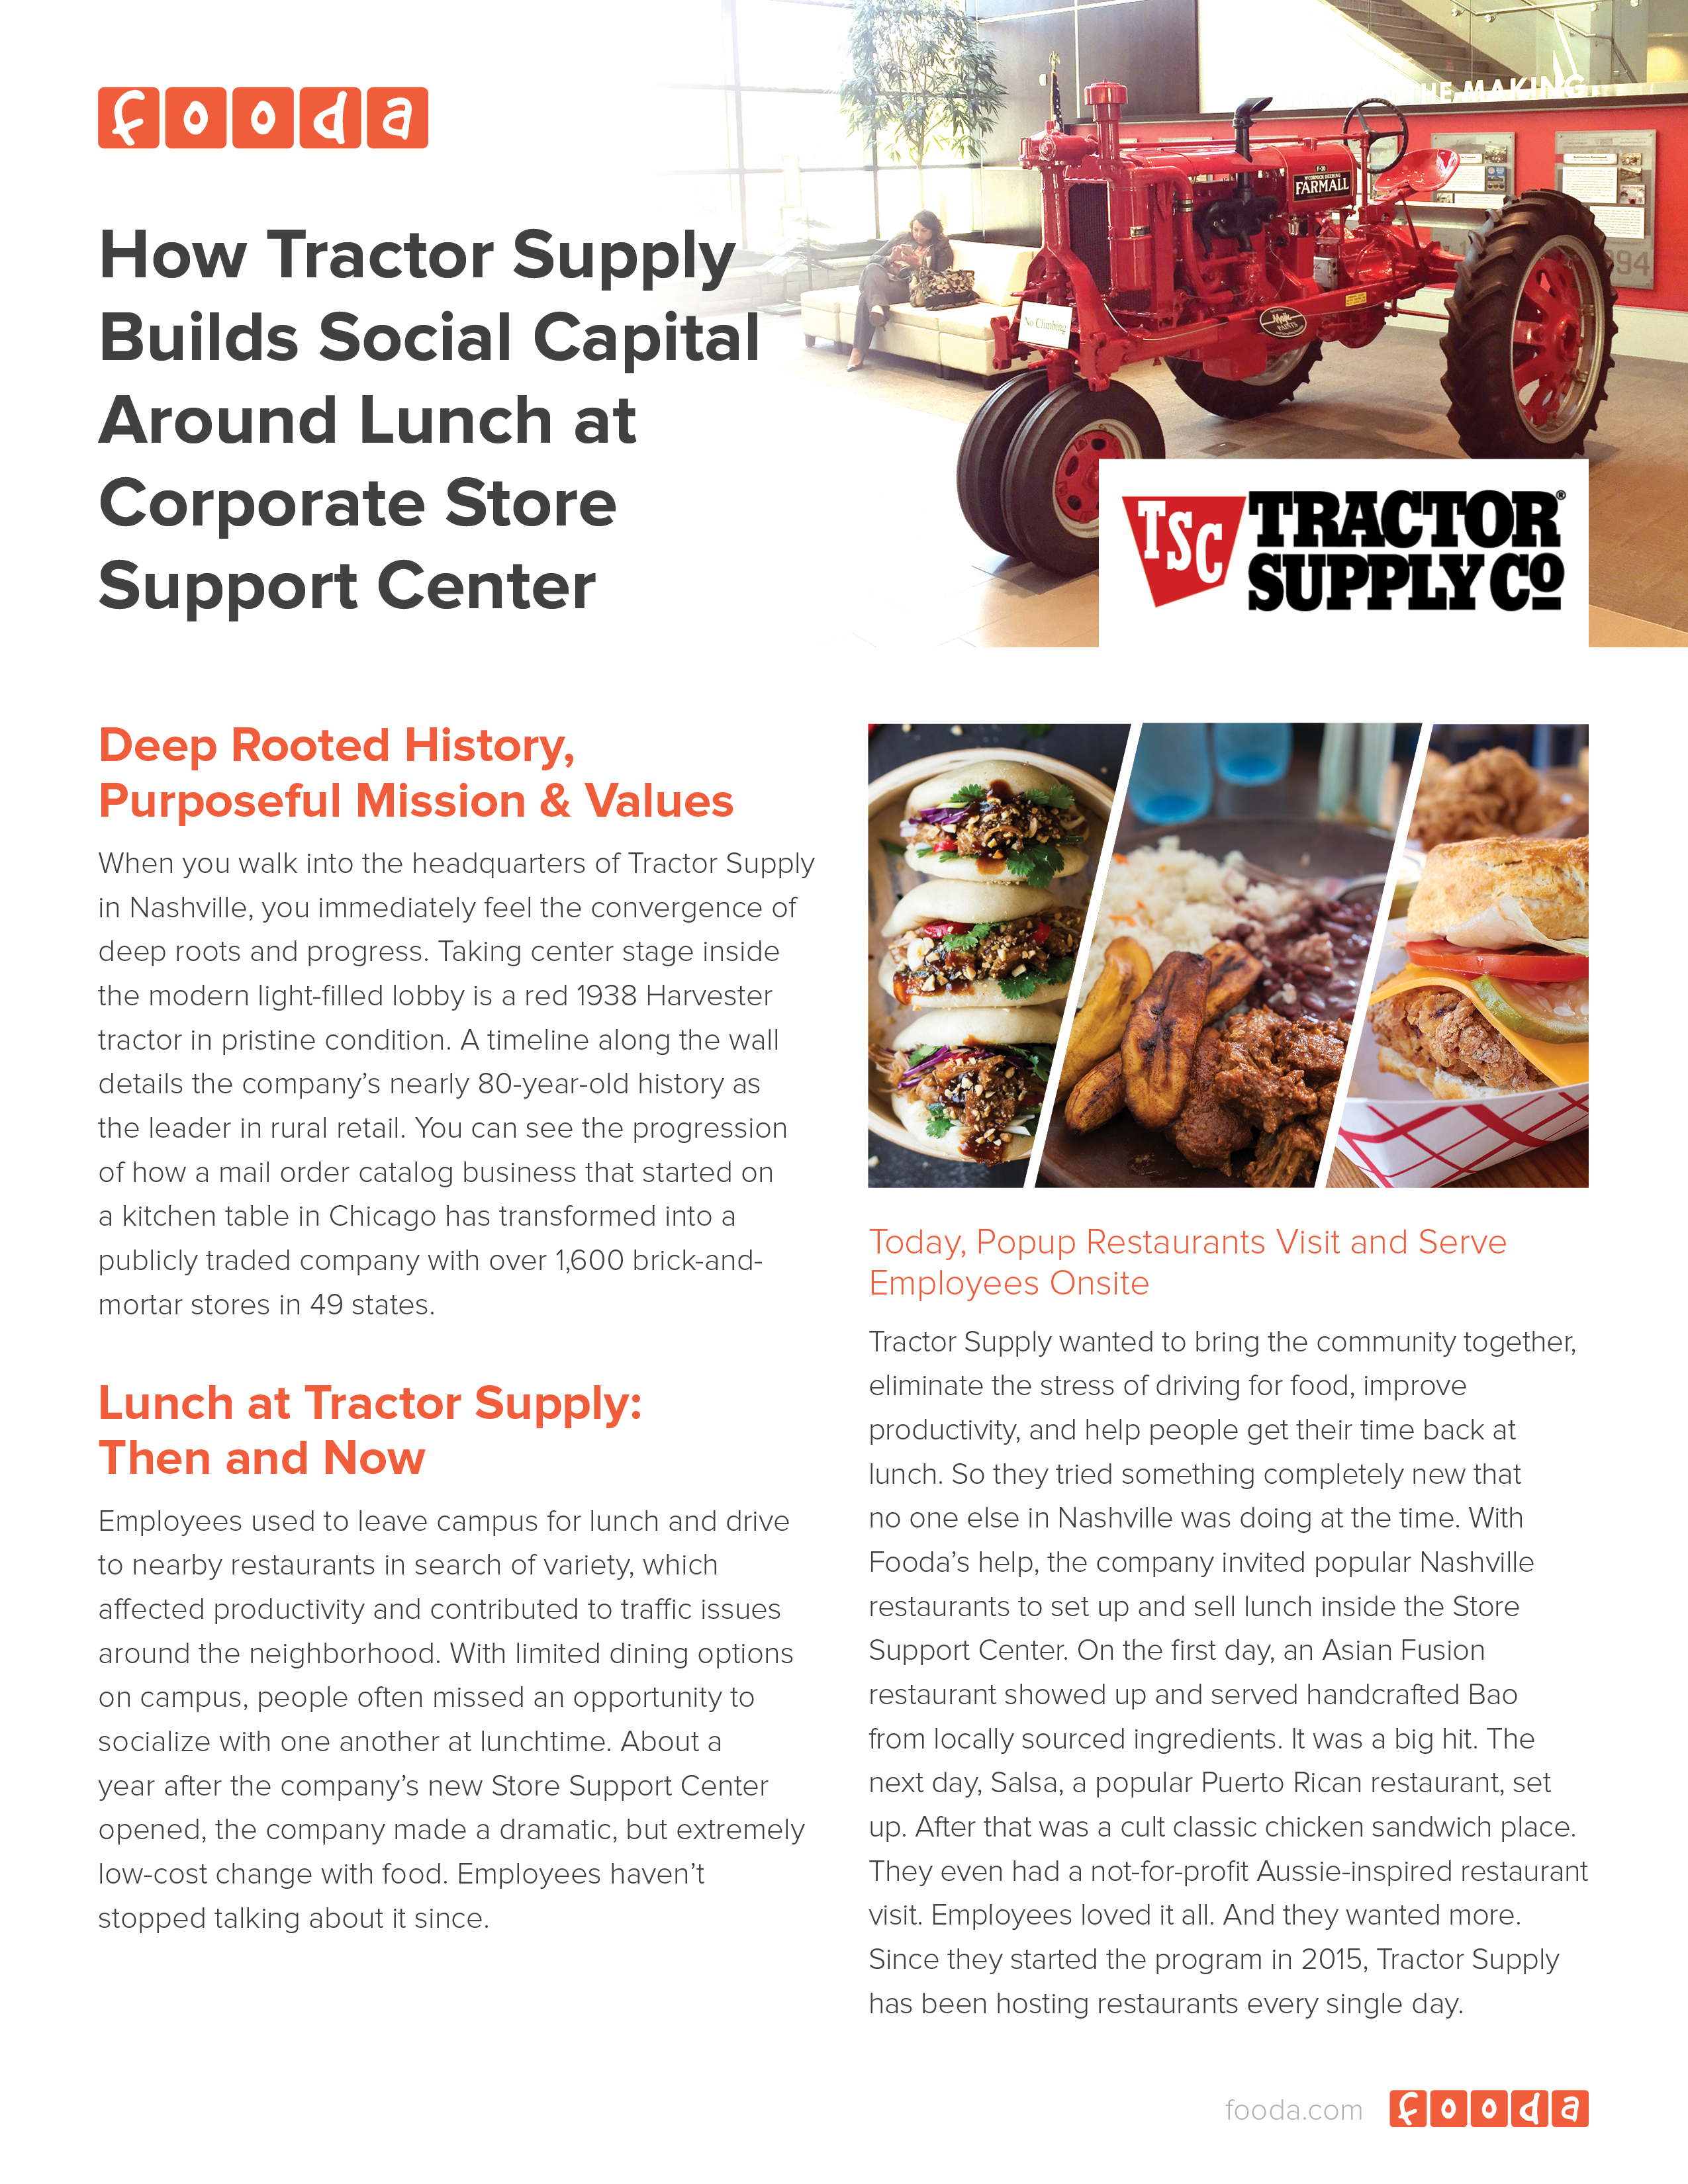 How Tractor Supply Builds Social Capital Around Lunch at Corporate ...